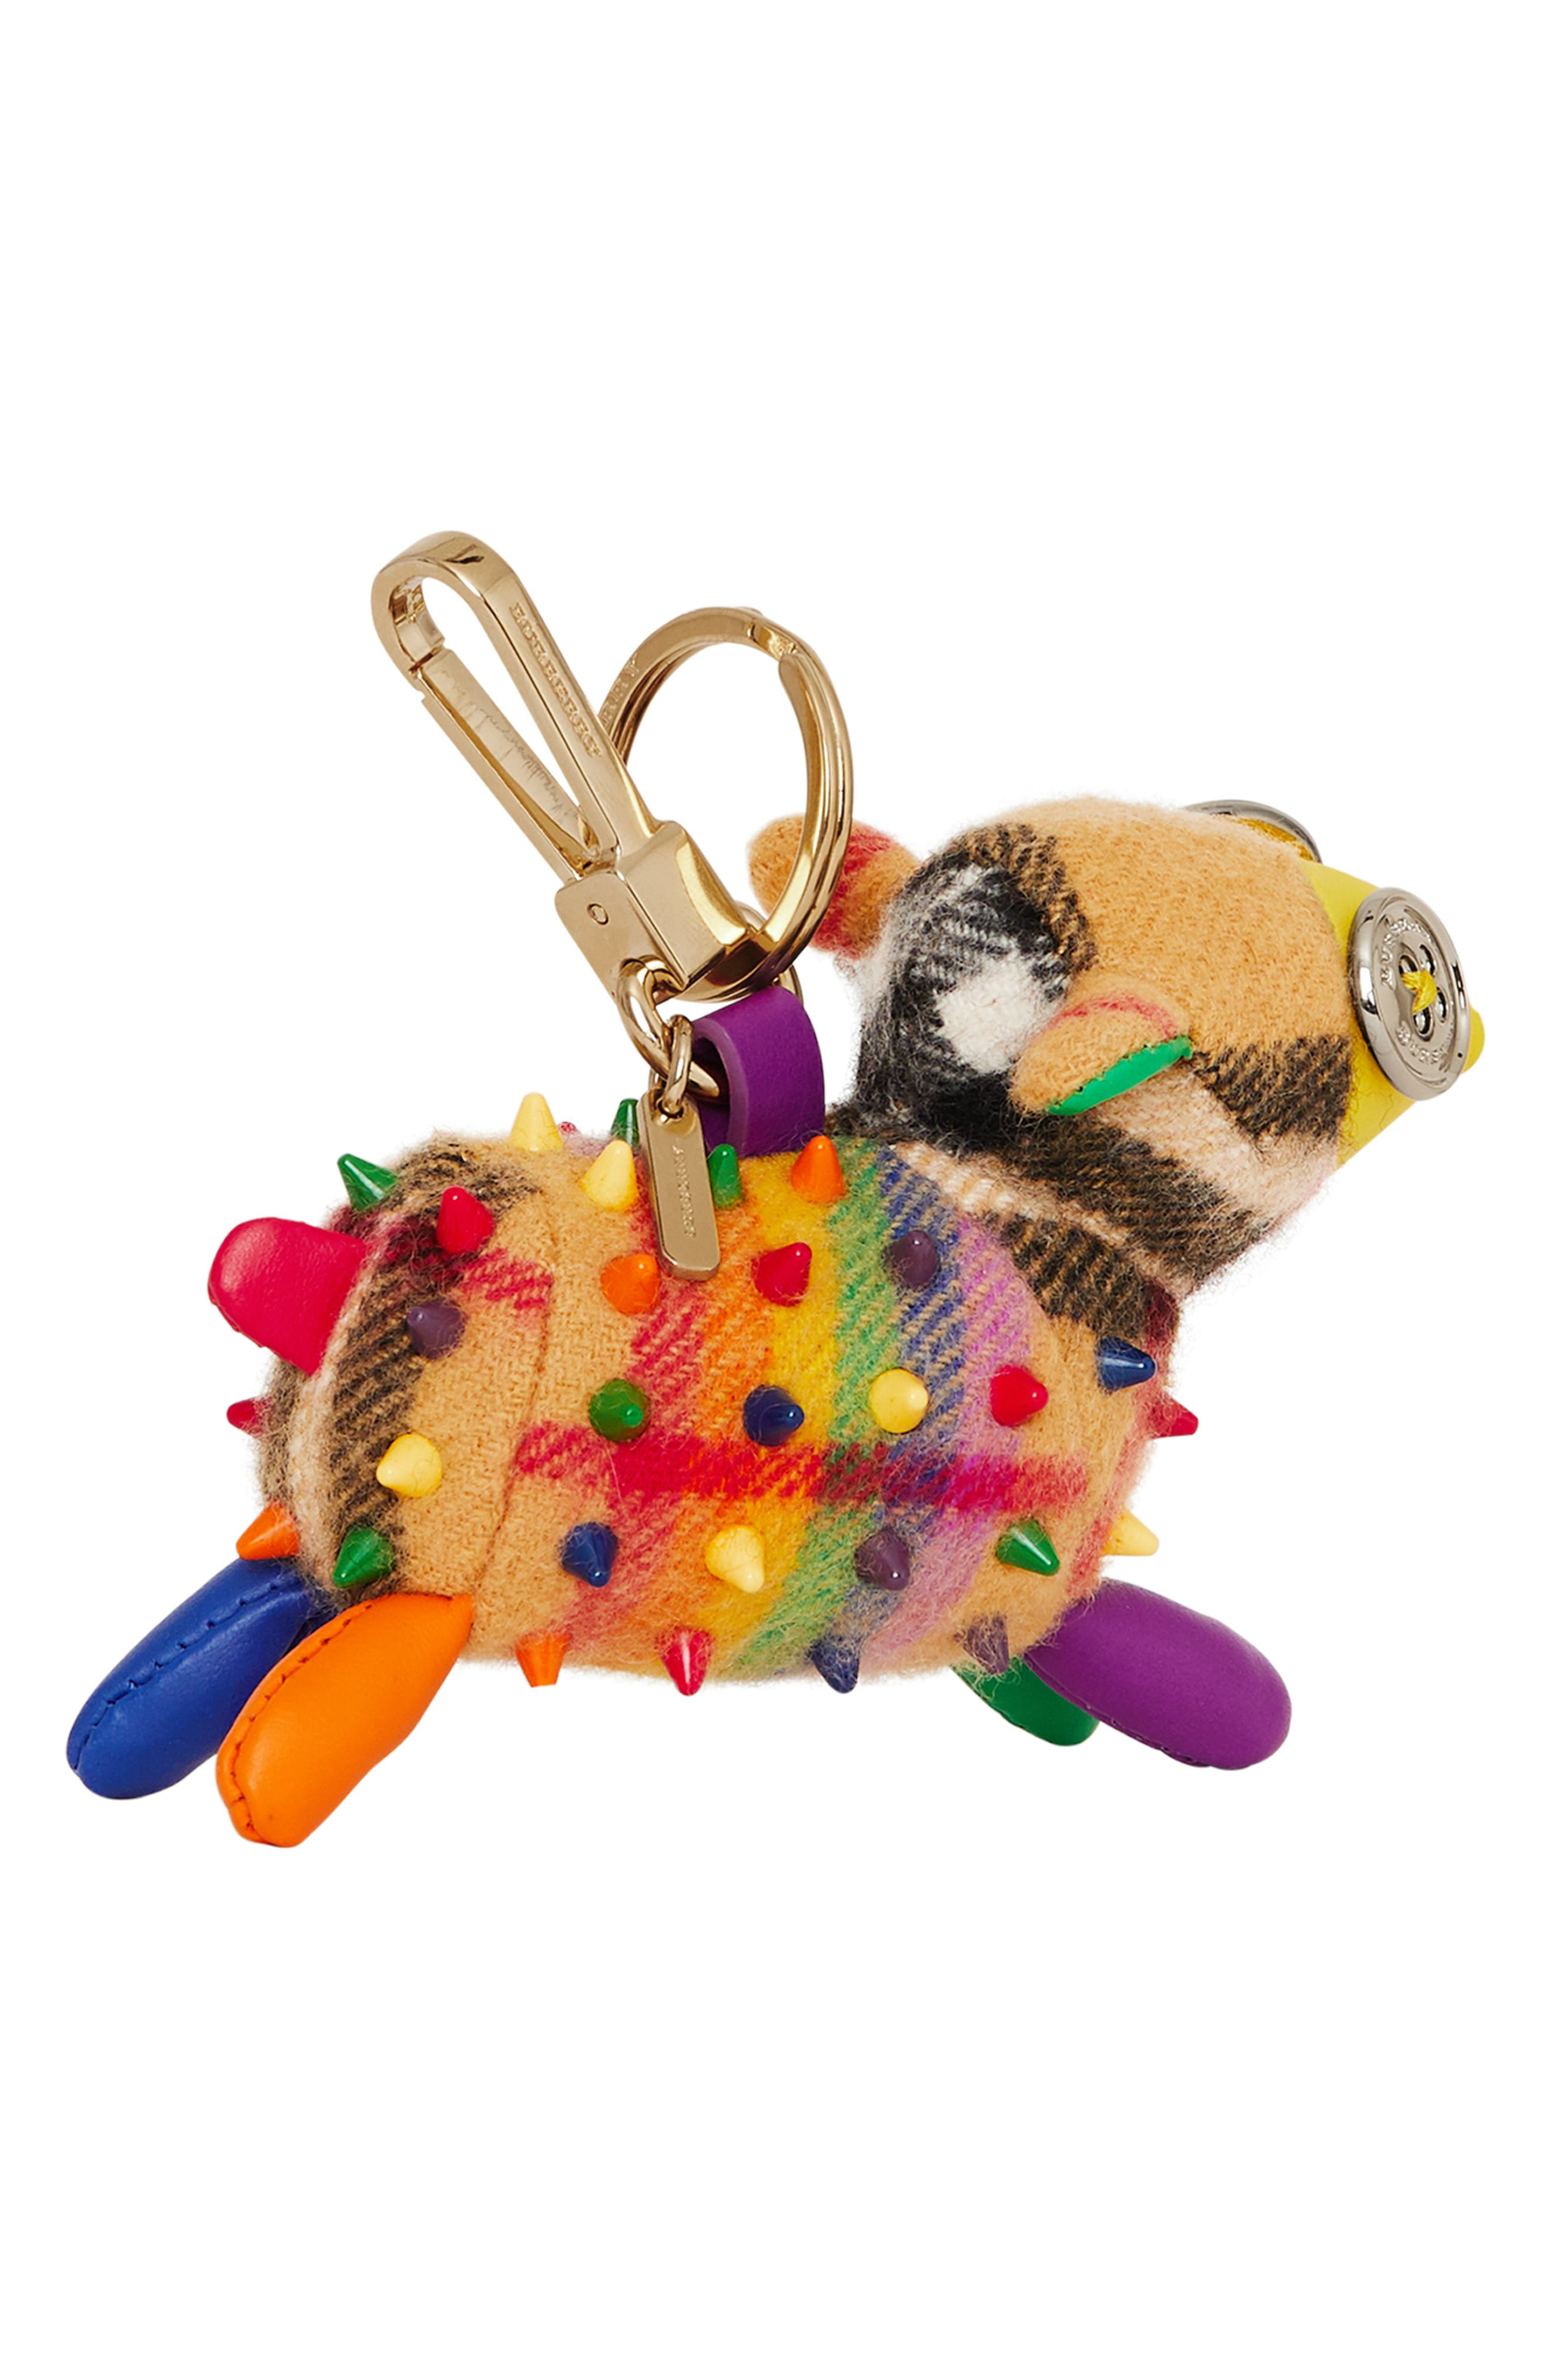 BURBERRY,                             Wendy the Sheep Rainbow Check Cashmere Bag Charm,                             Alternate thumbnail 4, color,                             250